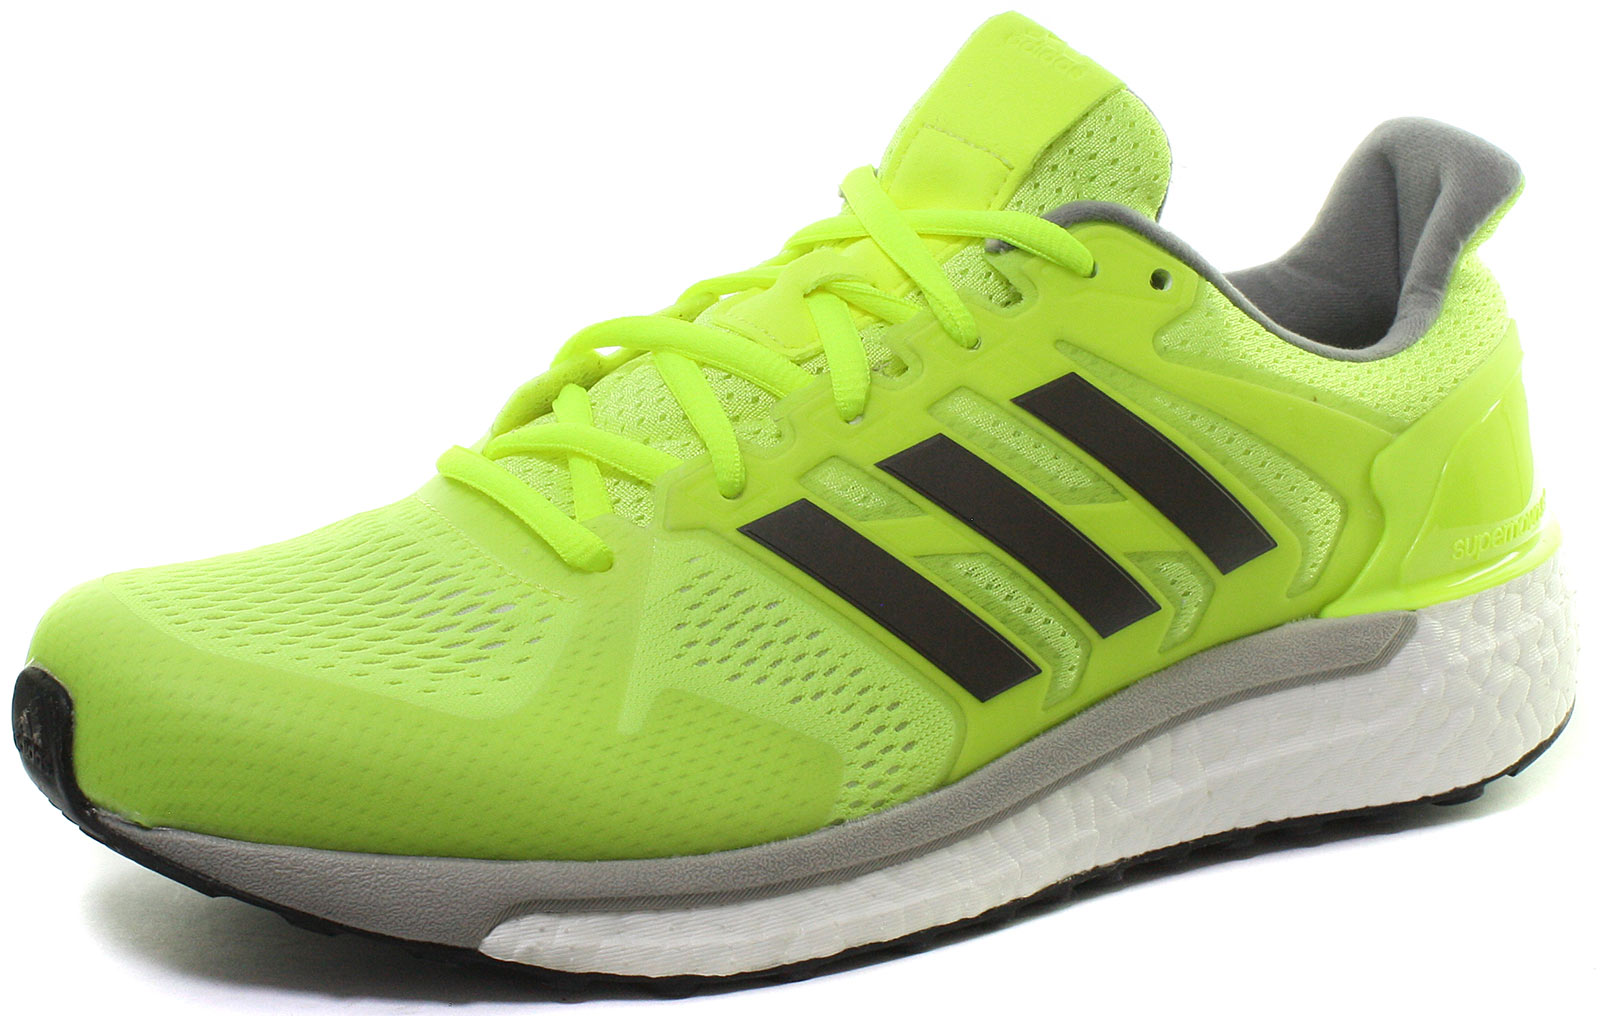 New adidas Supernova St Mens Running shoes   Trainers Size UK 14.5 (EU 50 2 3)